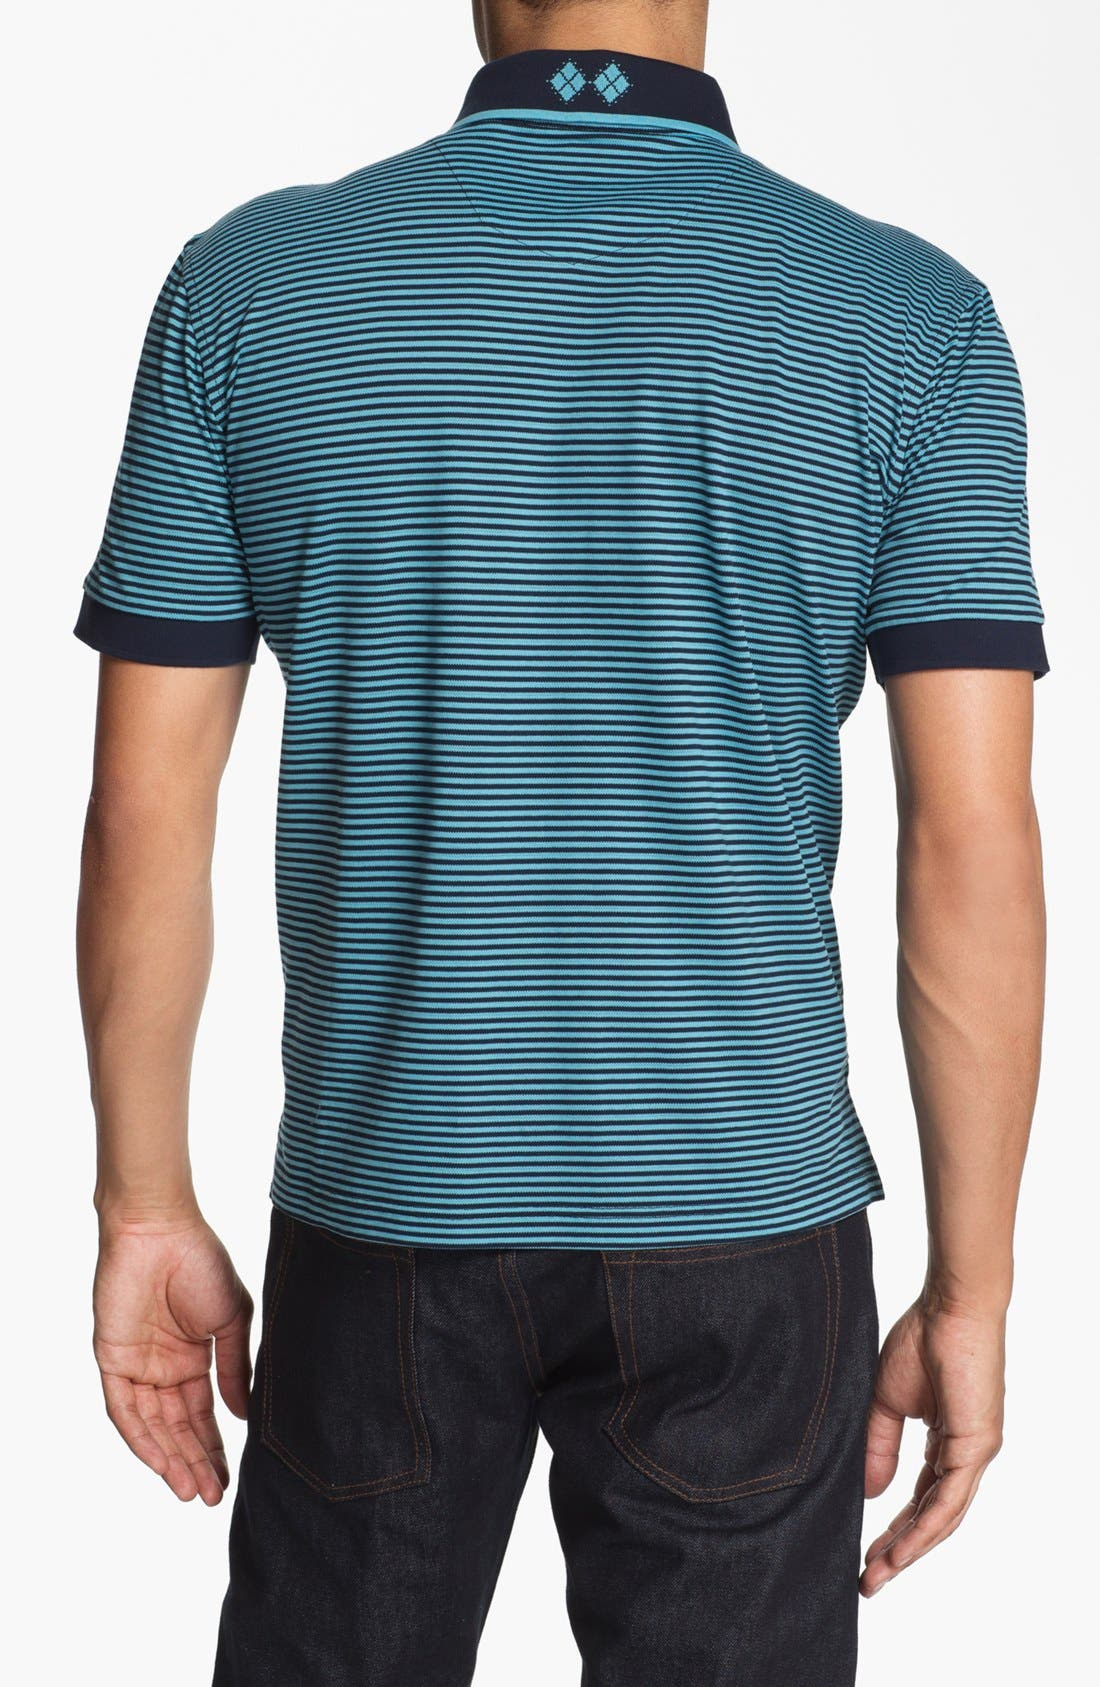 Main Image - Robert Graham 'Barcelo' Knit Polo